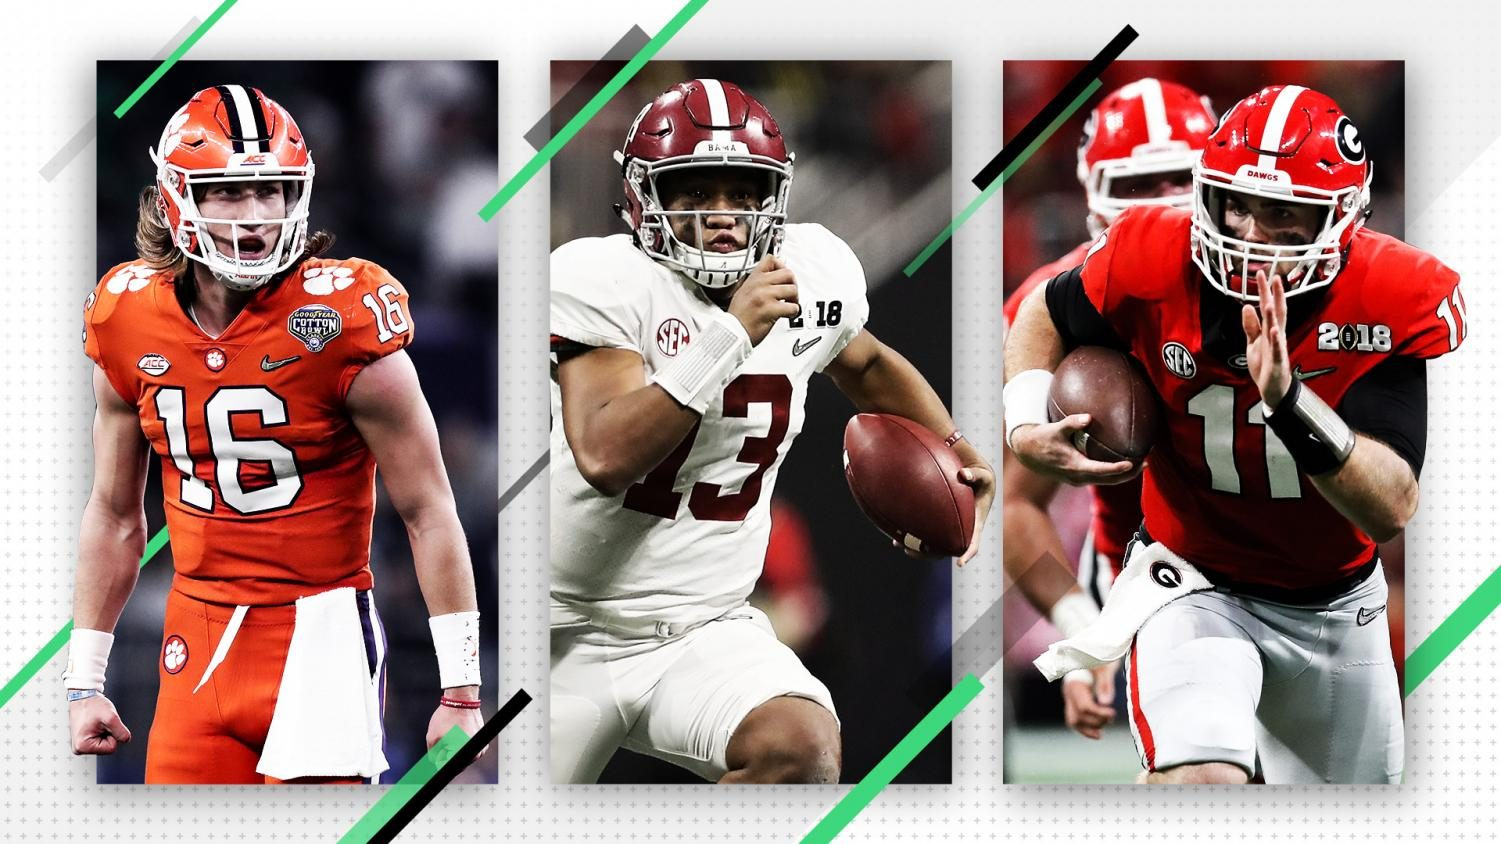 Noah Hedges gives his top 10 rankings for college football in 2019.